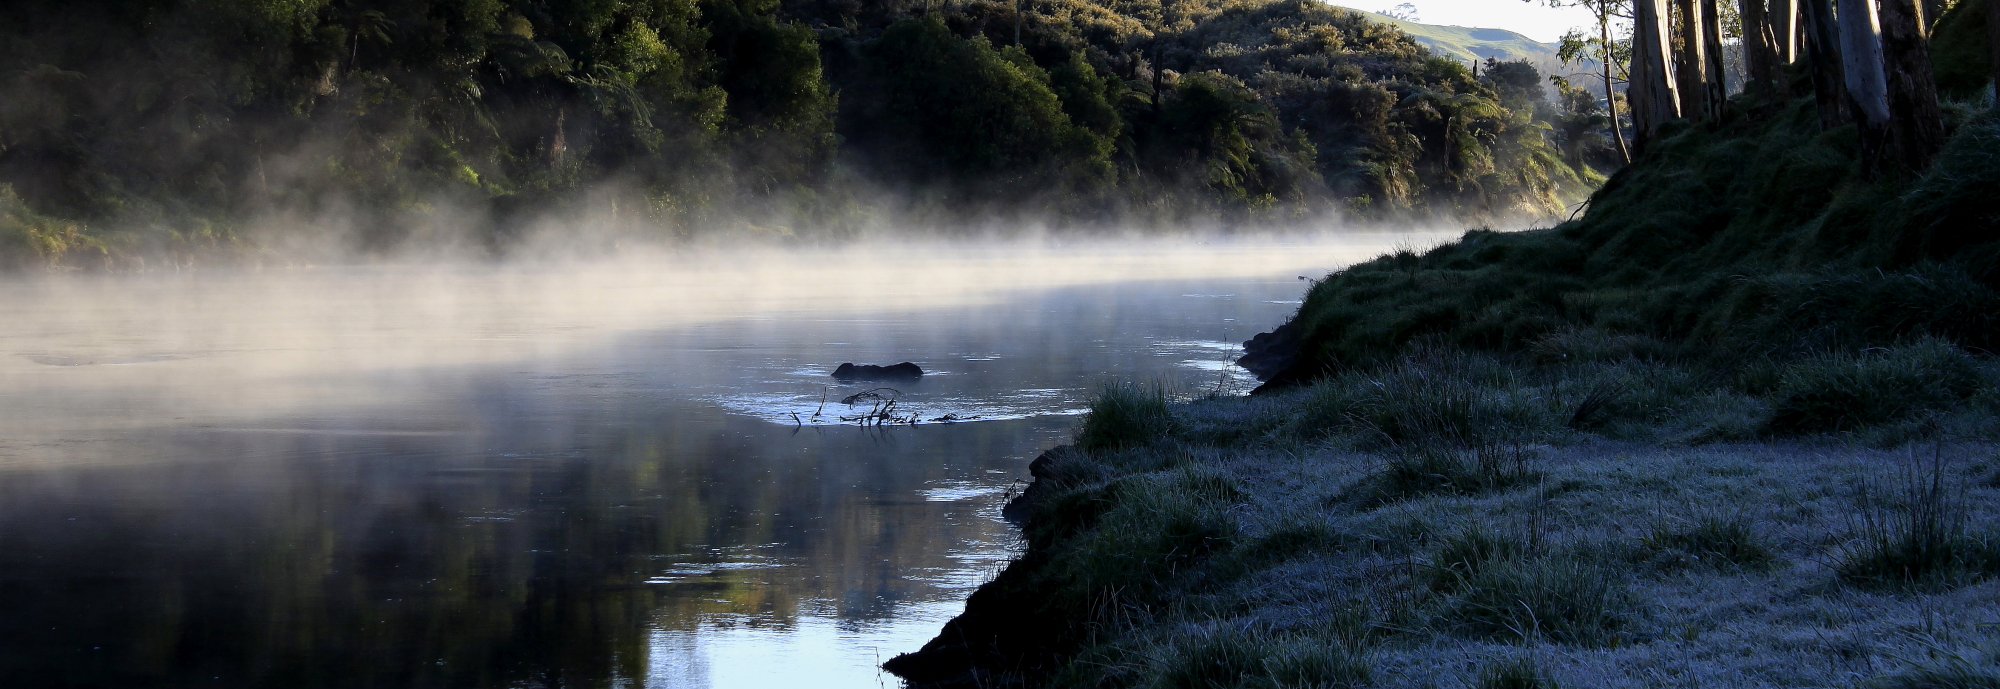 Wairoa River at dawn